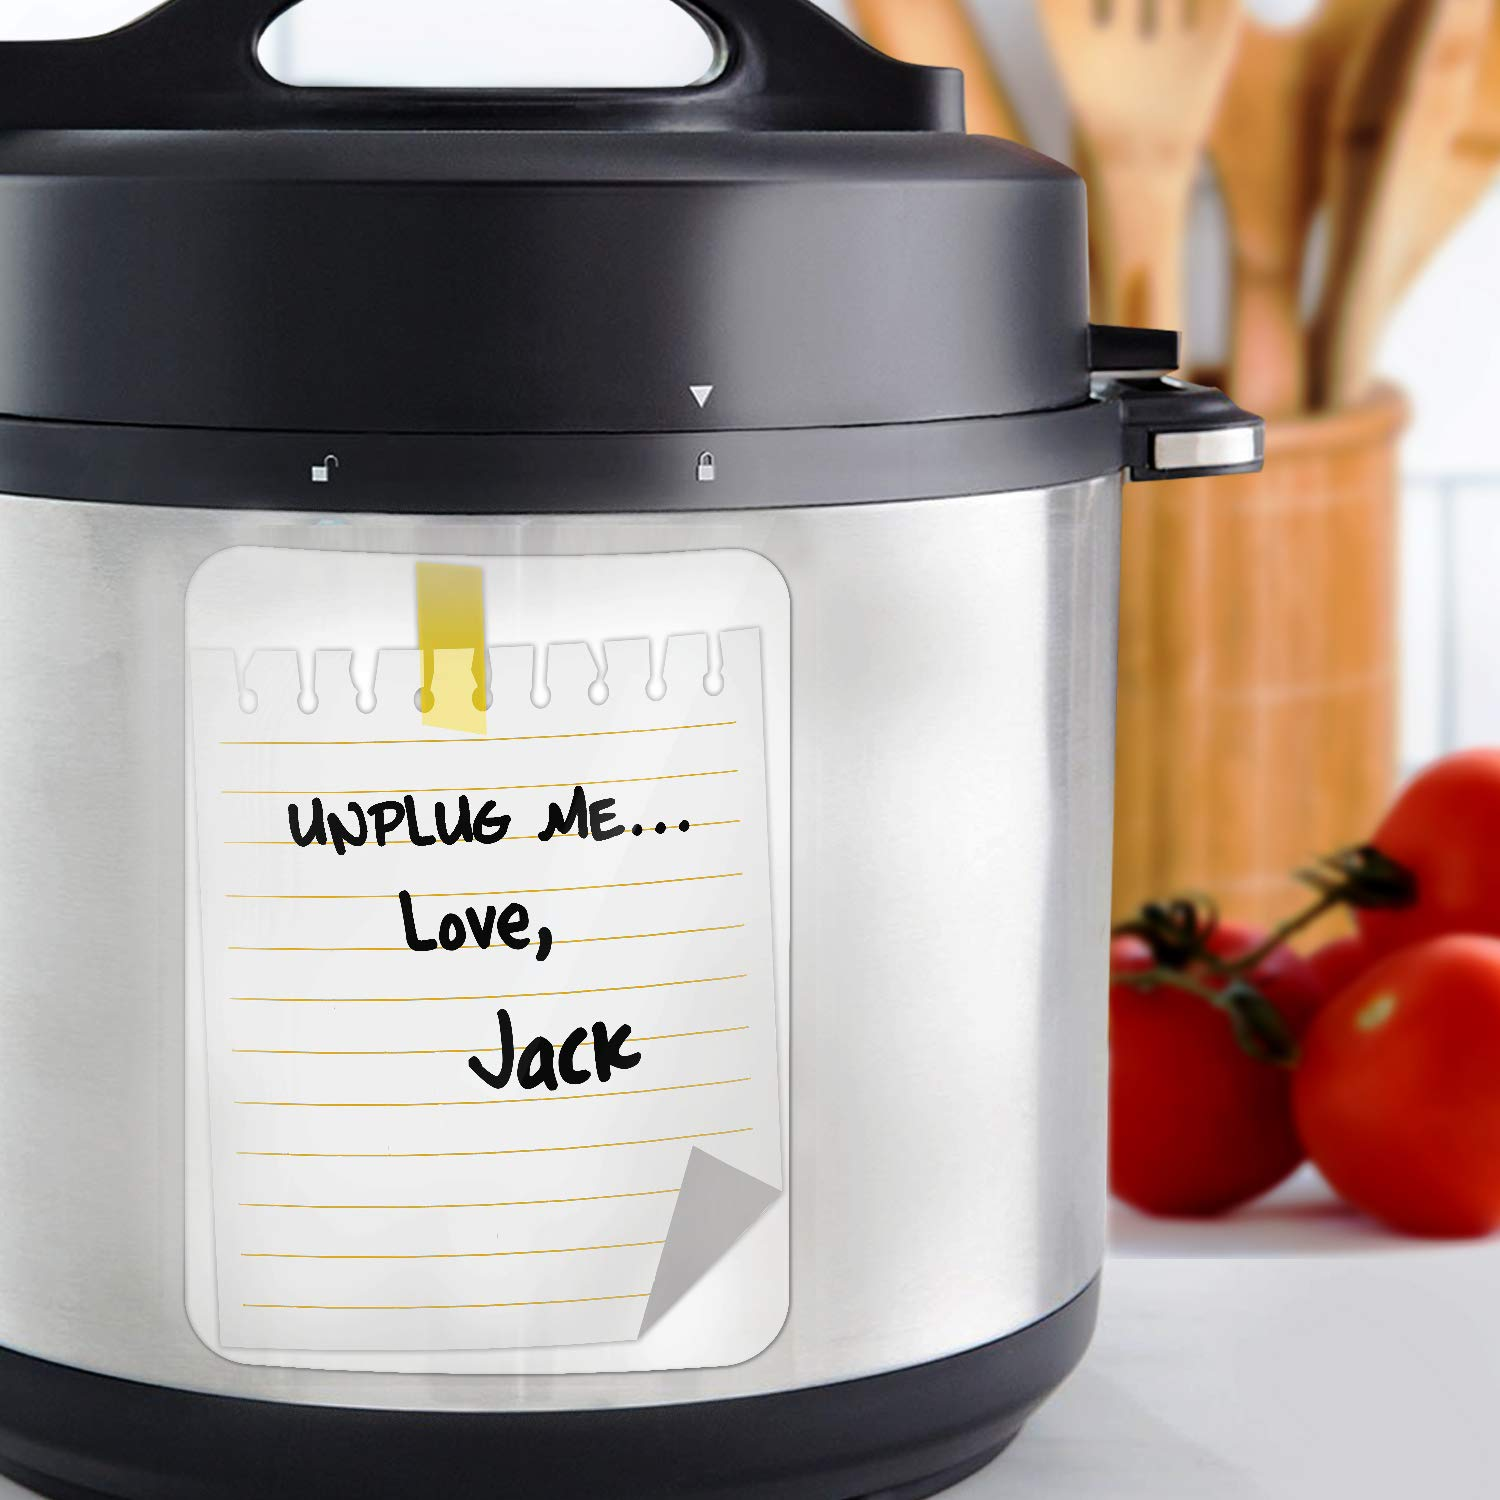 and Instant Pot Pressure Cooker Unplug Me Please Magnet Vinyl Sticker and Decal Alternative This Is Us Slow Dress Up Your Instapot and Crockpot in Style Multi Jack Pearson For Crock Pot